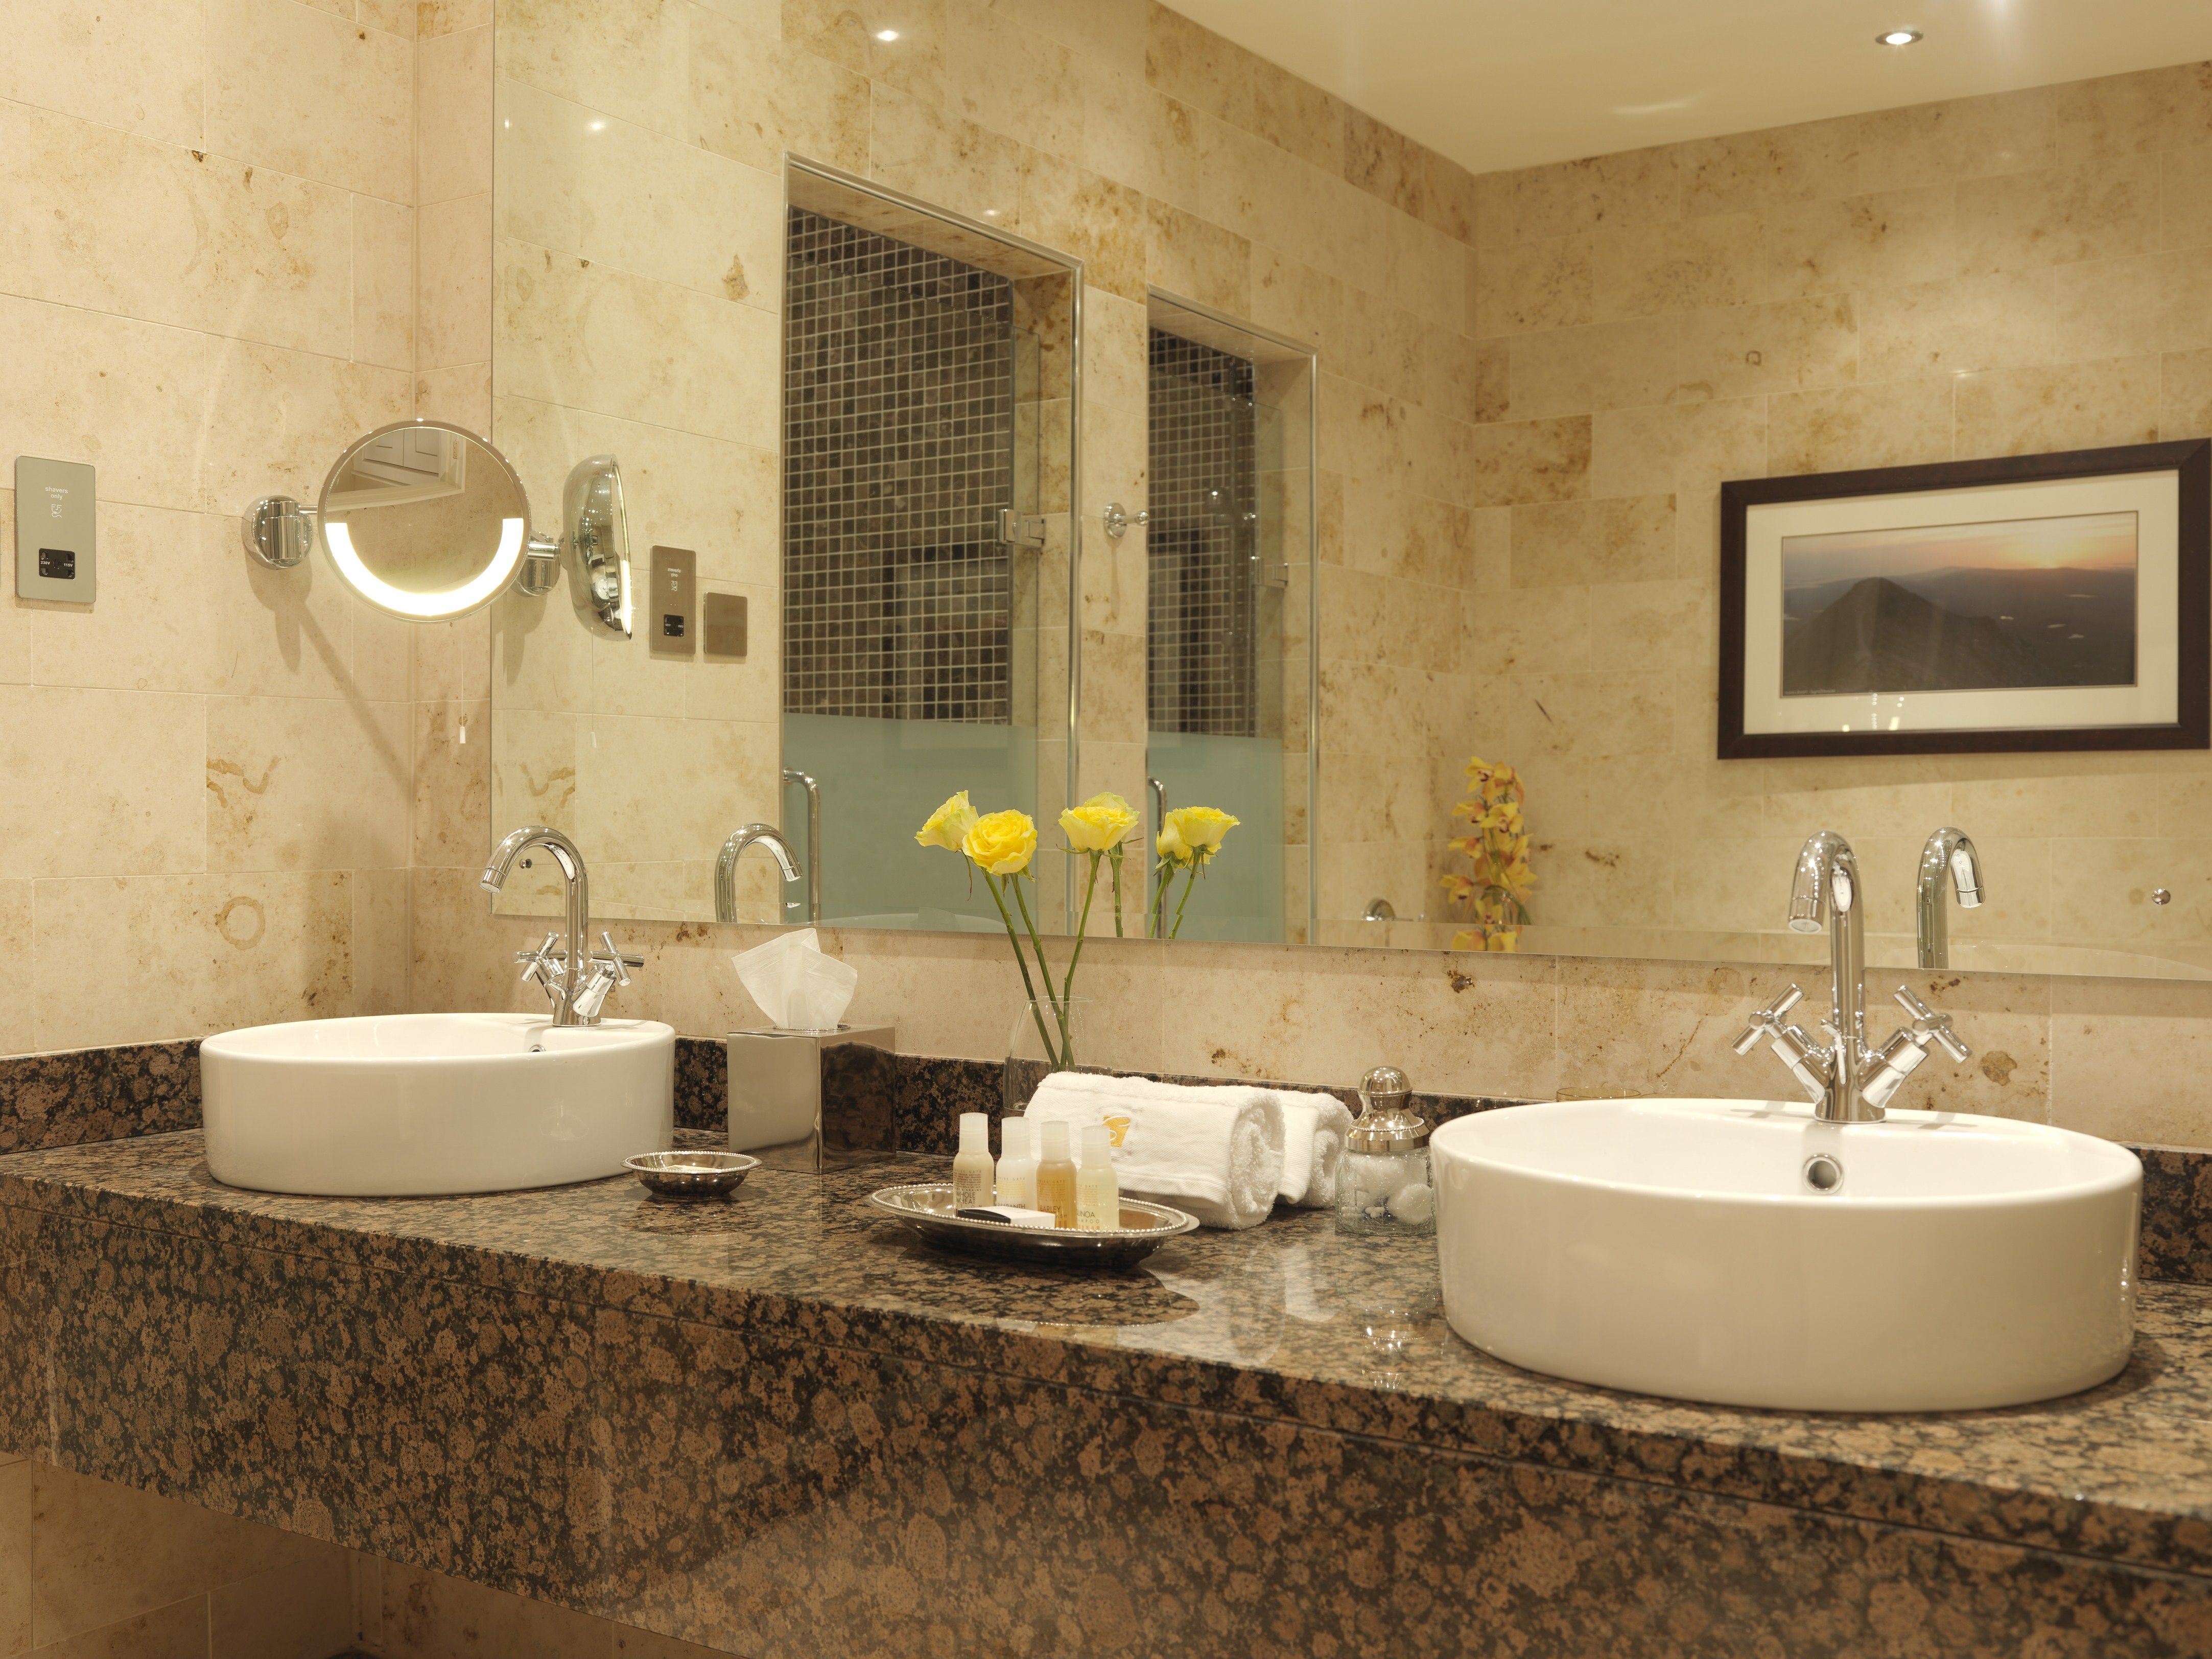 Classy Double White Round Bowl Sink On Brown Granite